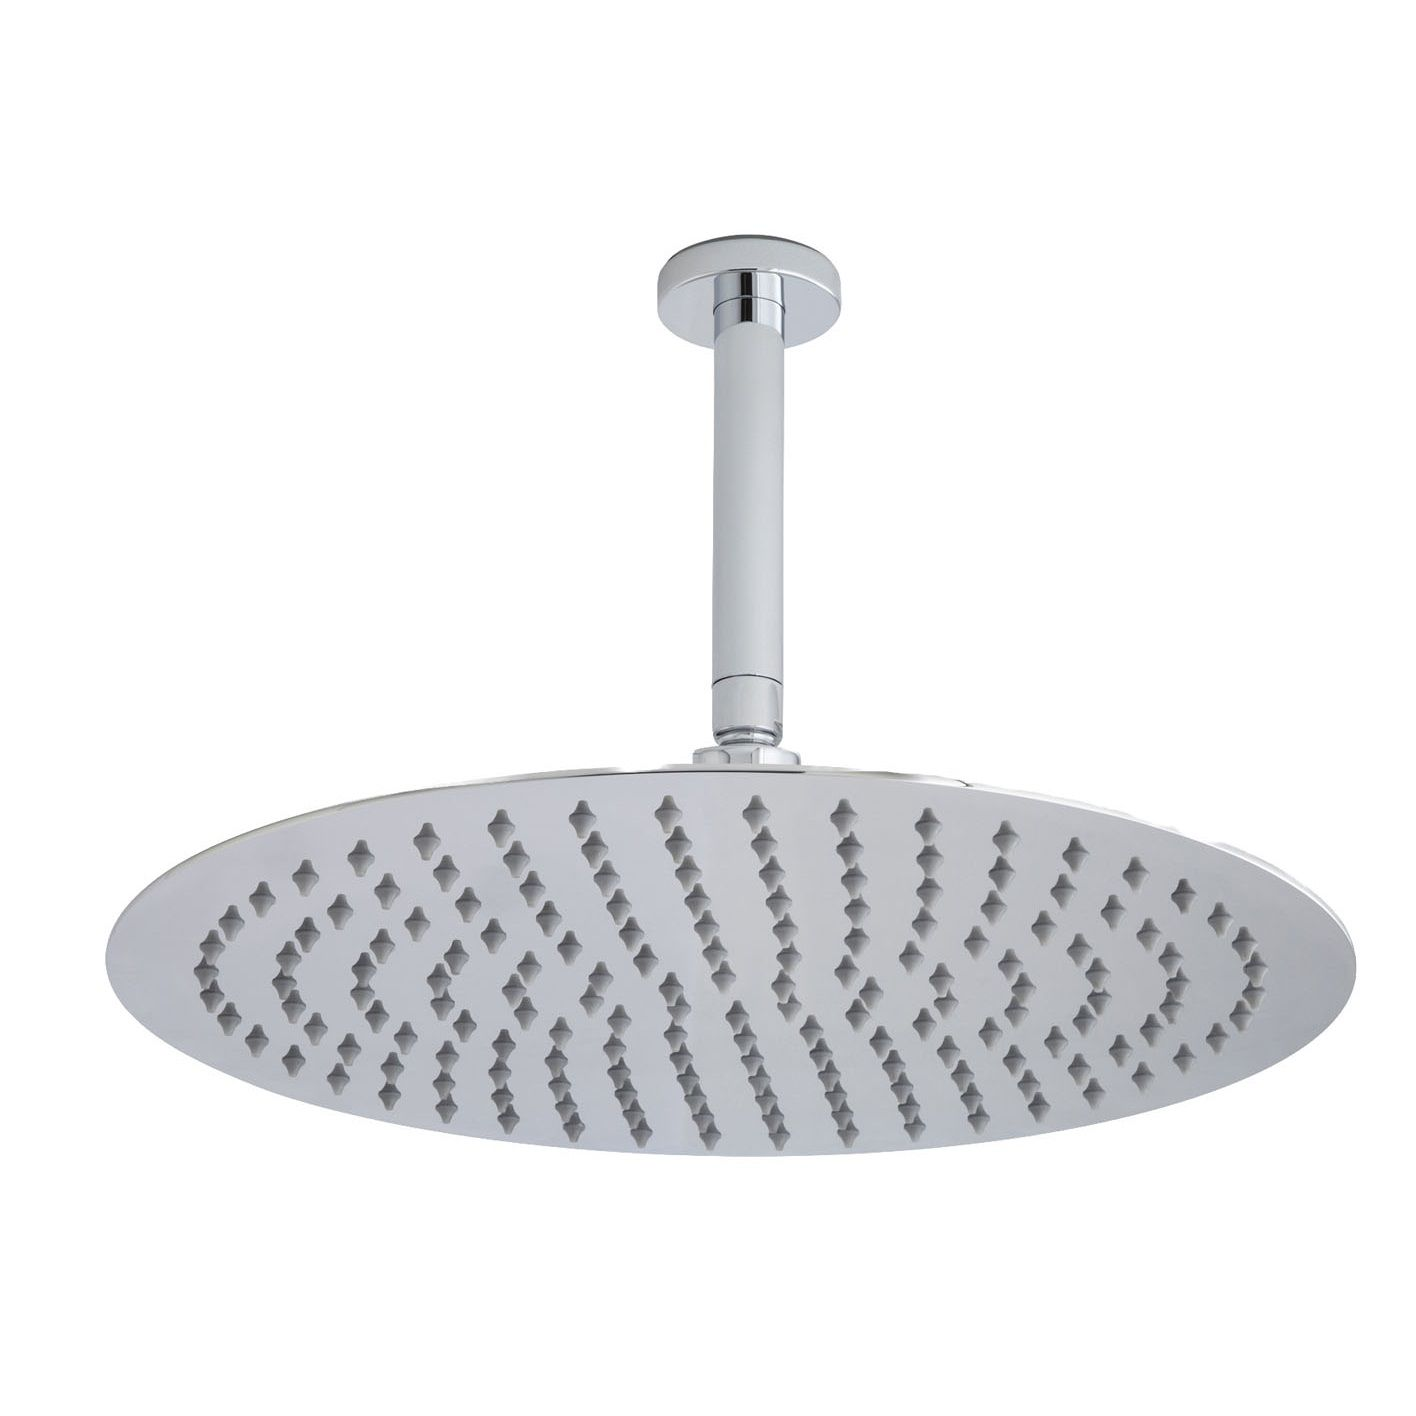 "15.75"" Shower Head with Ceiling Mounting Arm"